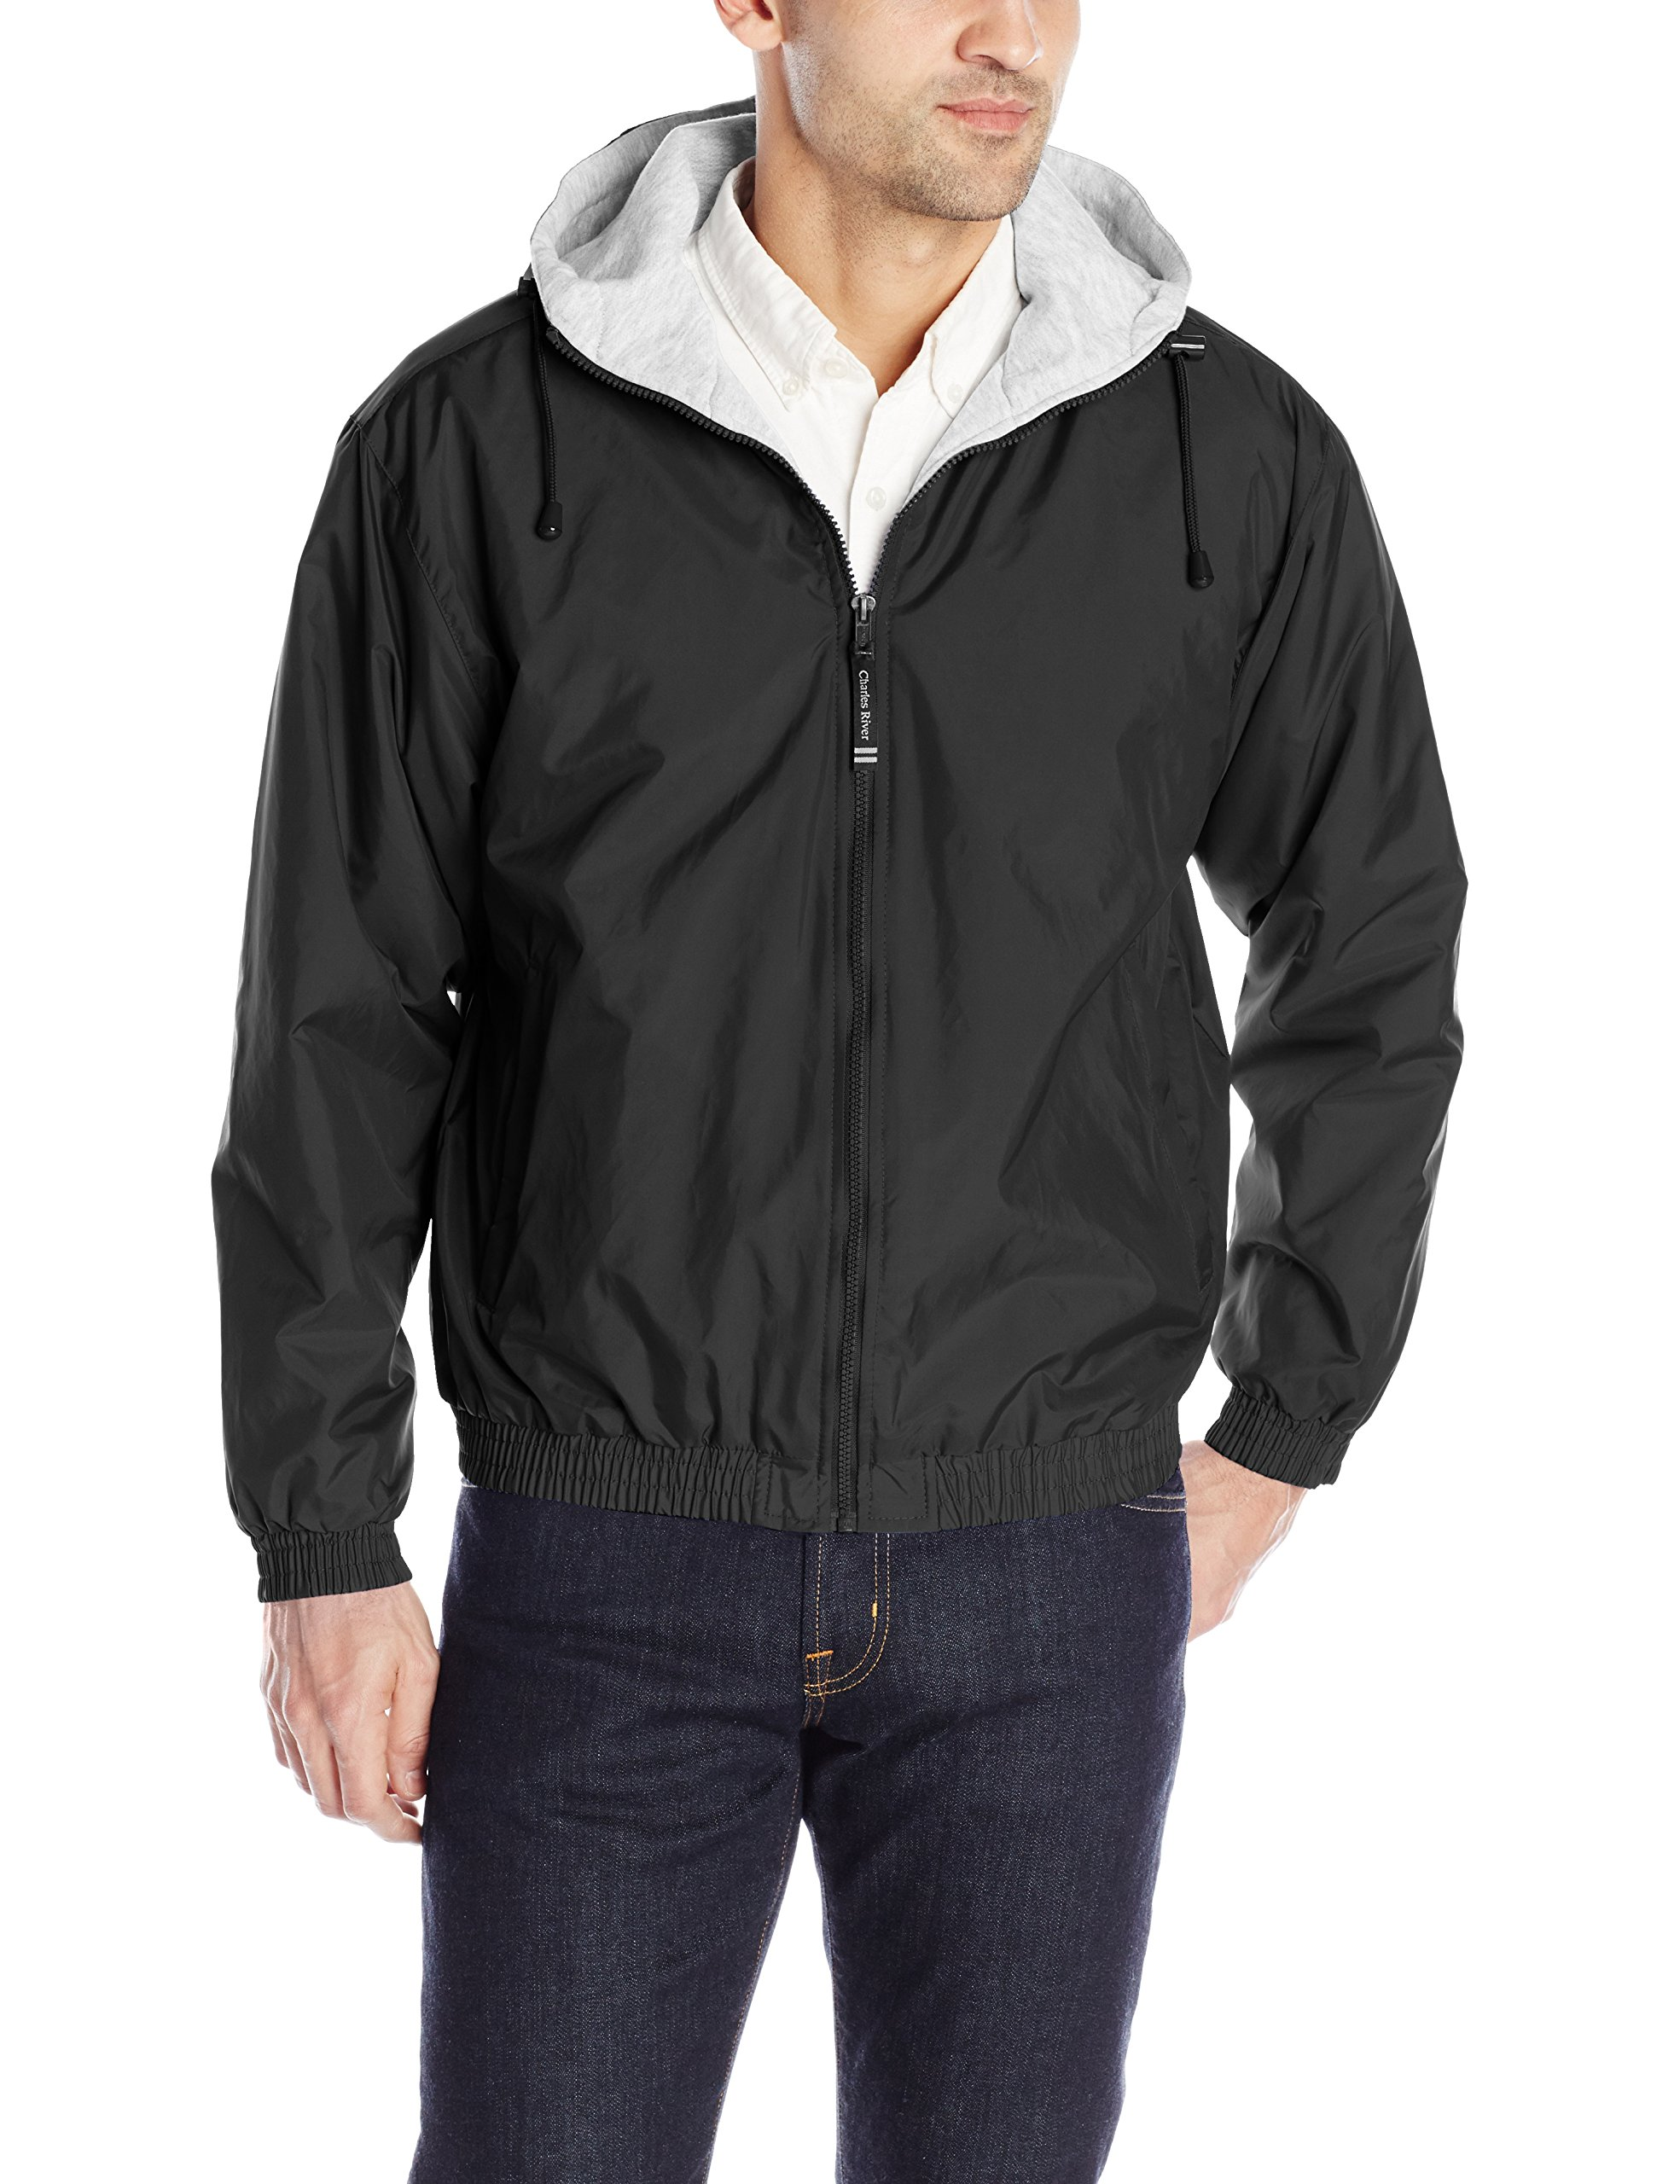 Charles River Apparel Men's Performer Jacket, Black, Medium by Charles River Apparel